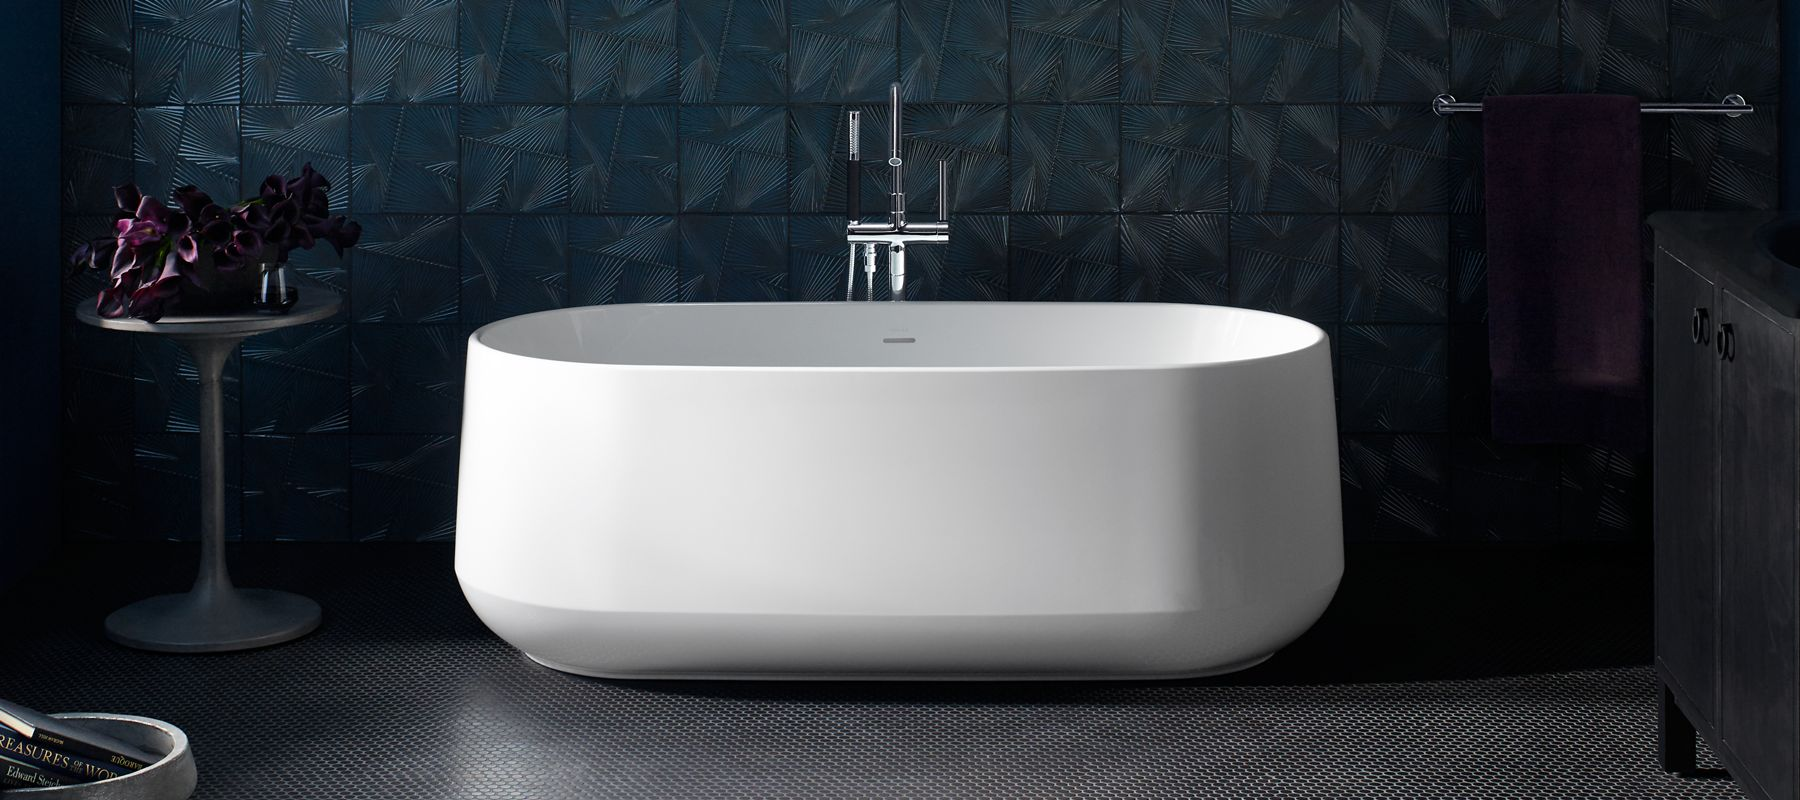 Uncategorized Freestand Bathtub freestanding bathtubs whirlpool bathing products bathroom kohler the depths of design